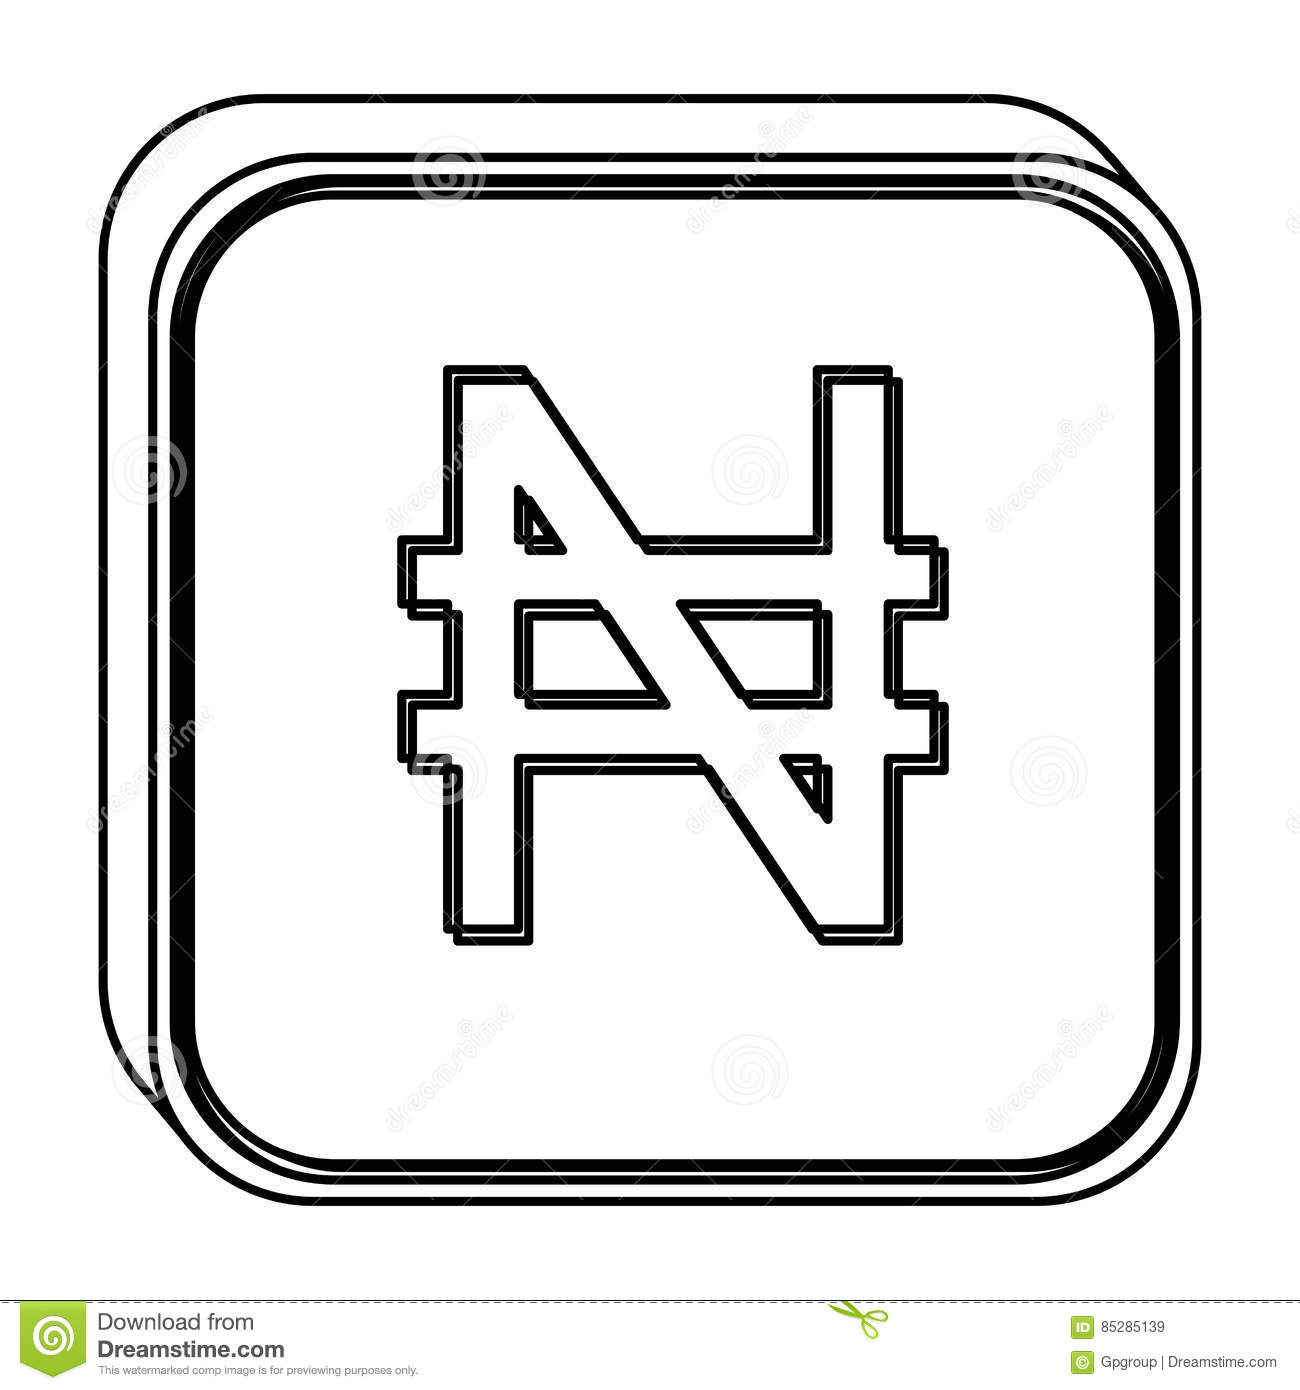 Monochrome Square Contour With Currency Symbol Of Nigerian Naira